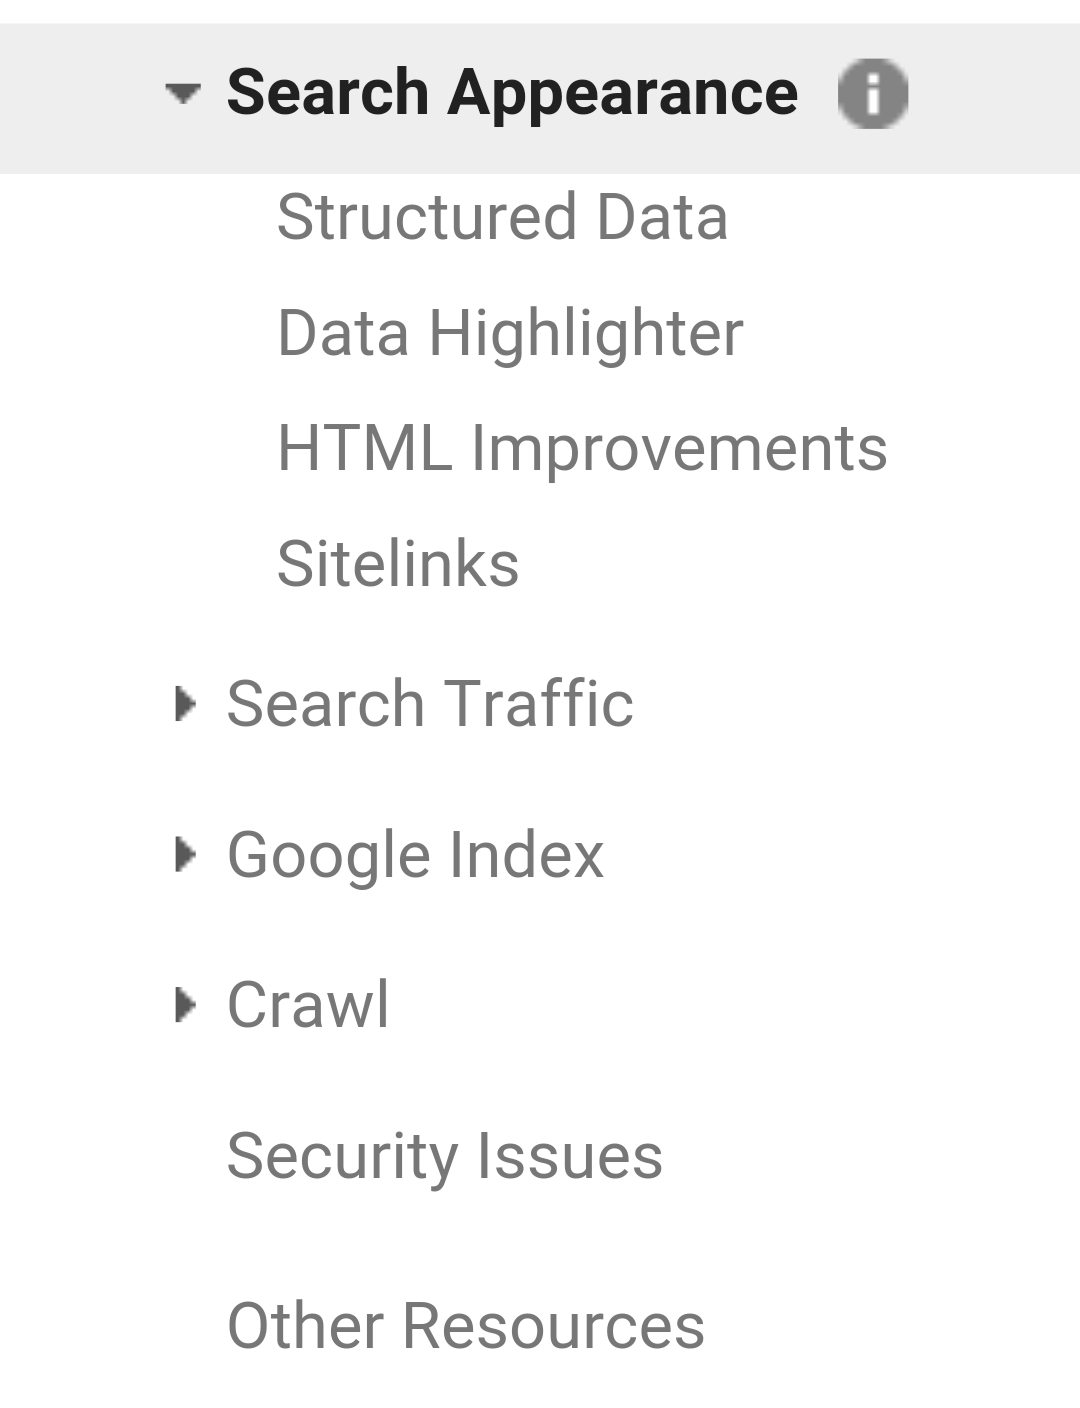 SEO Consulting Services, Consultant, Specialist, Freelancer: How to Use Google Search Console: The Complete Guide